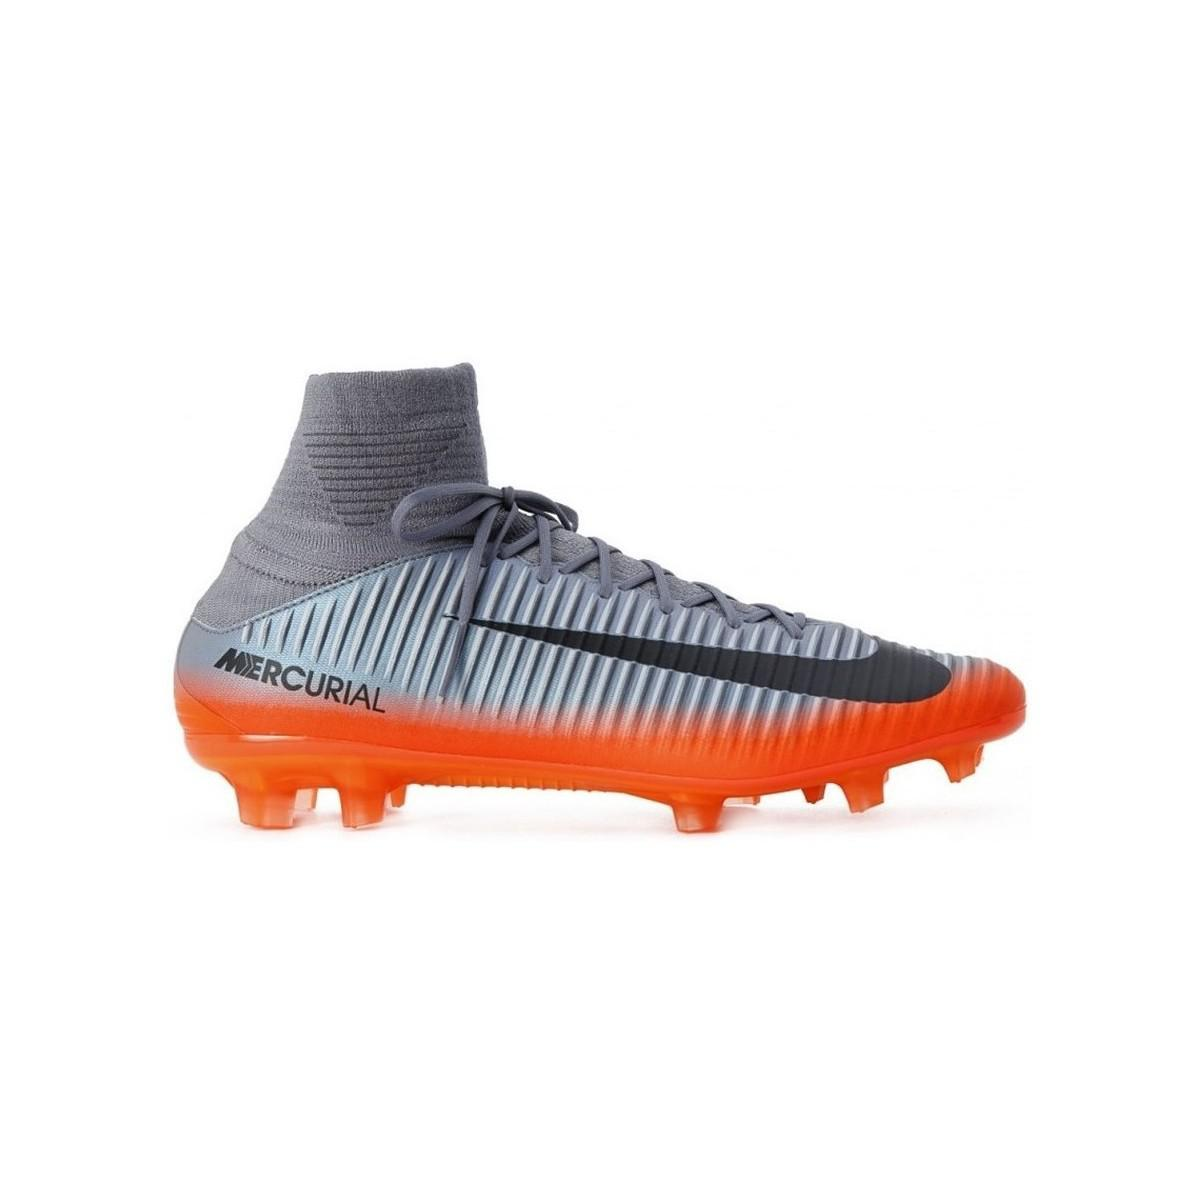 bbeddd01c Nike Mercurial Veloce Iii Df Cr7 Fg Men s Football Boots In Silver ...